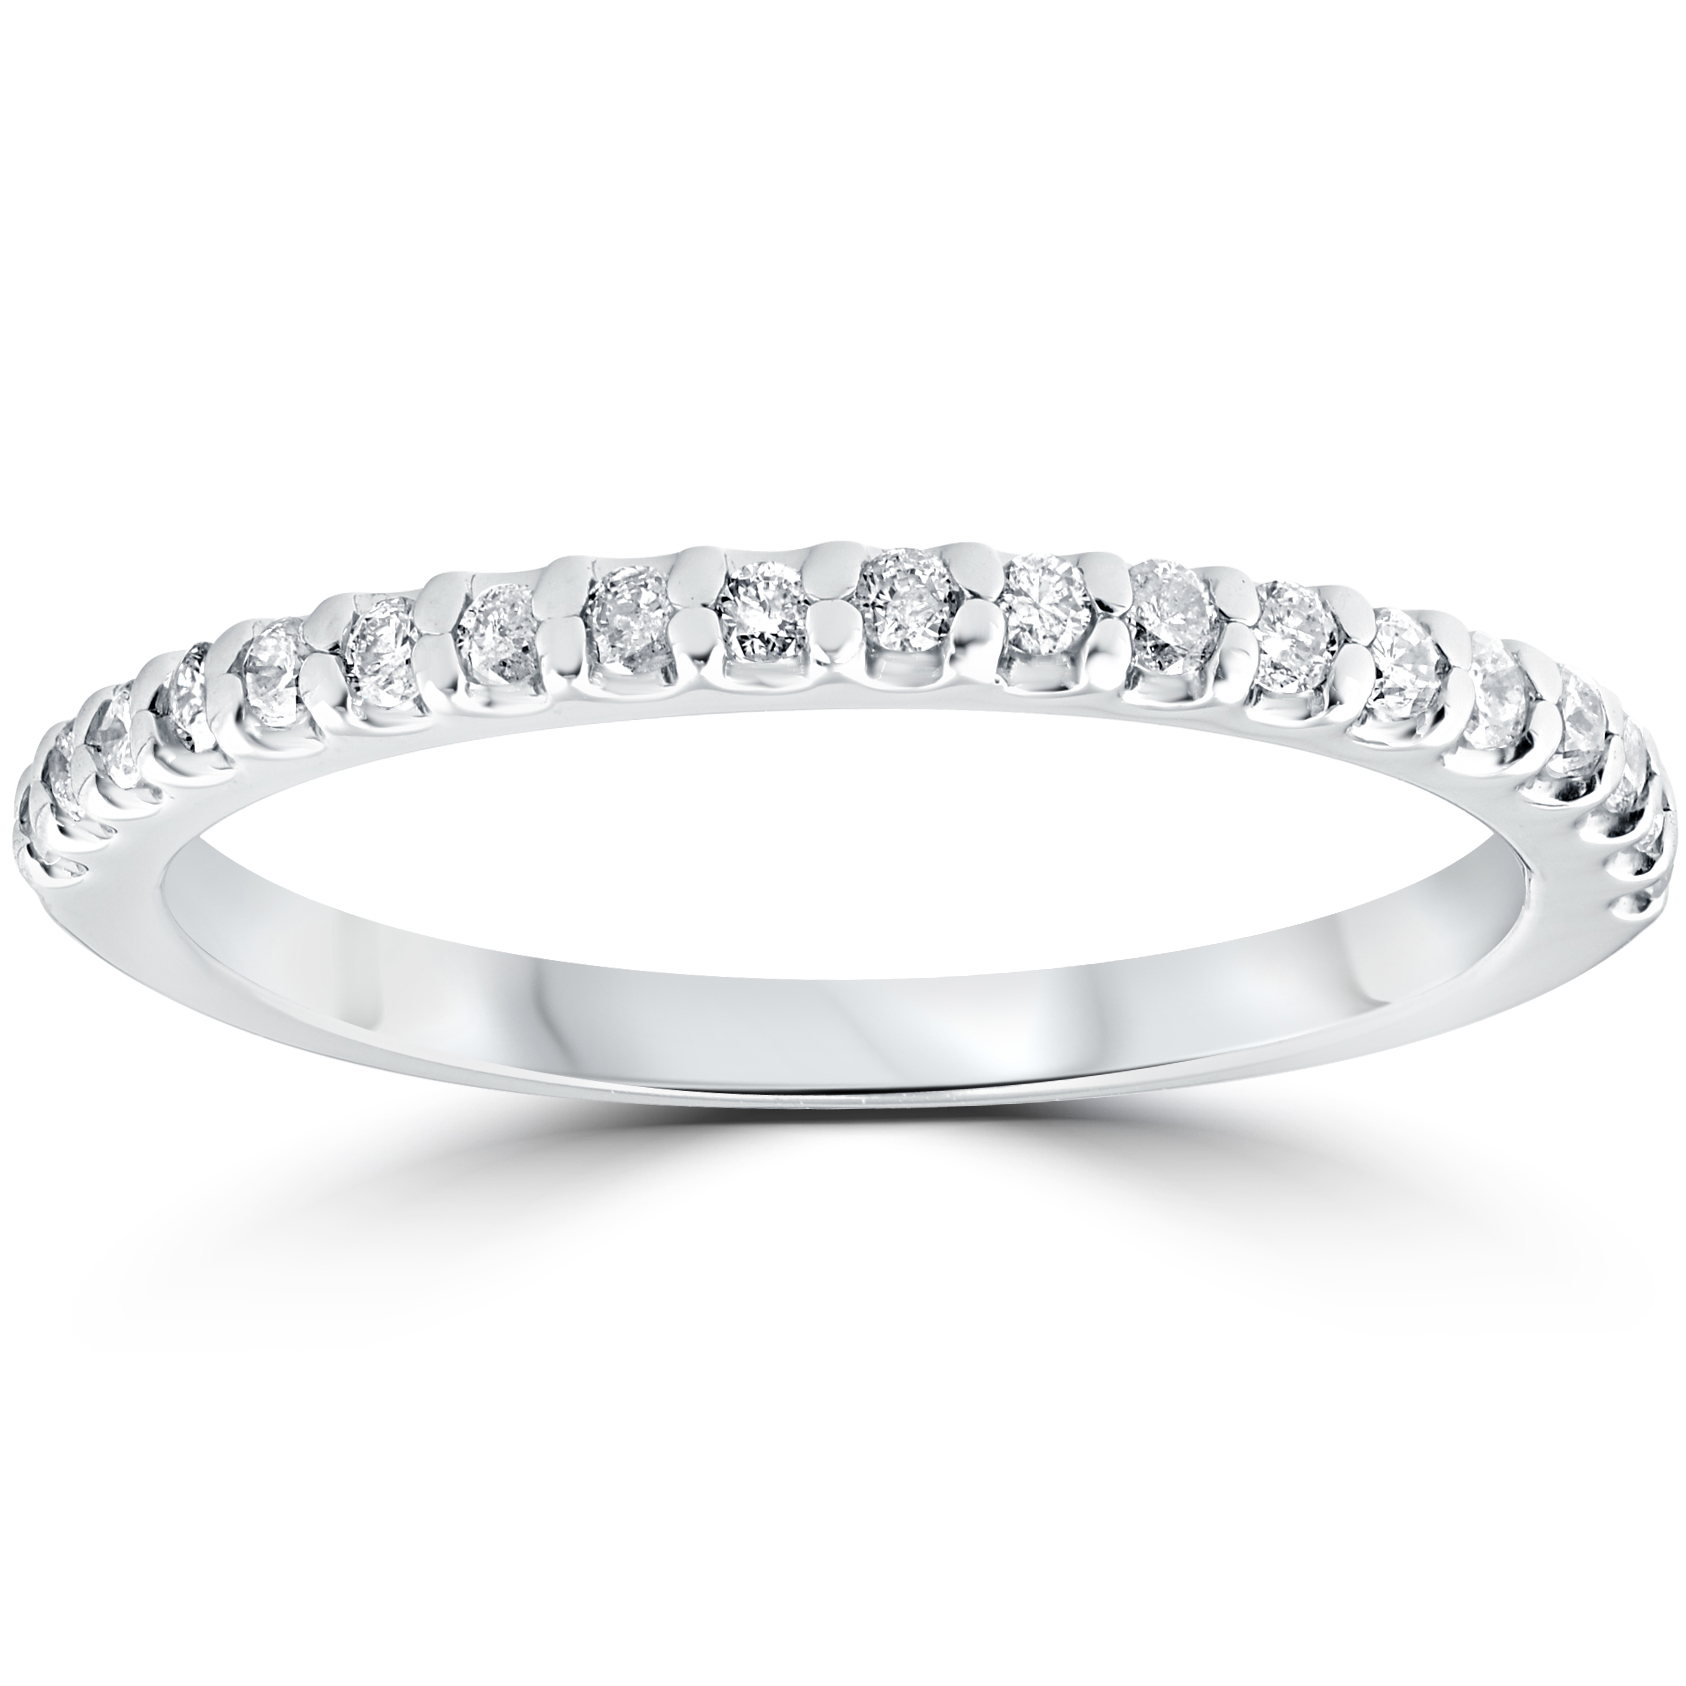 White Gold Wedding Rings For Women With Diamonds 1/5 cttw Diamond Stack...